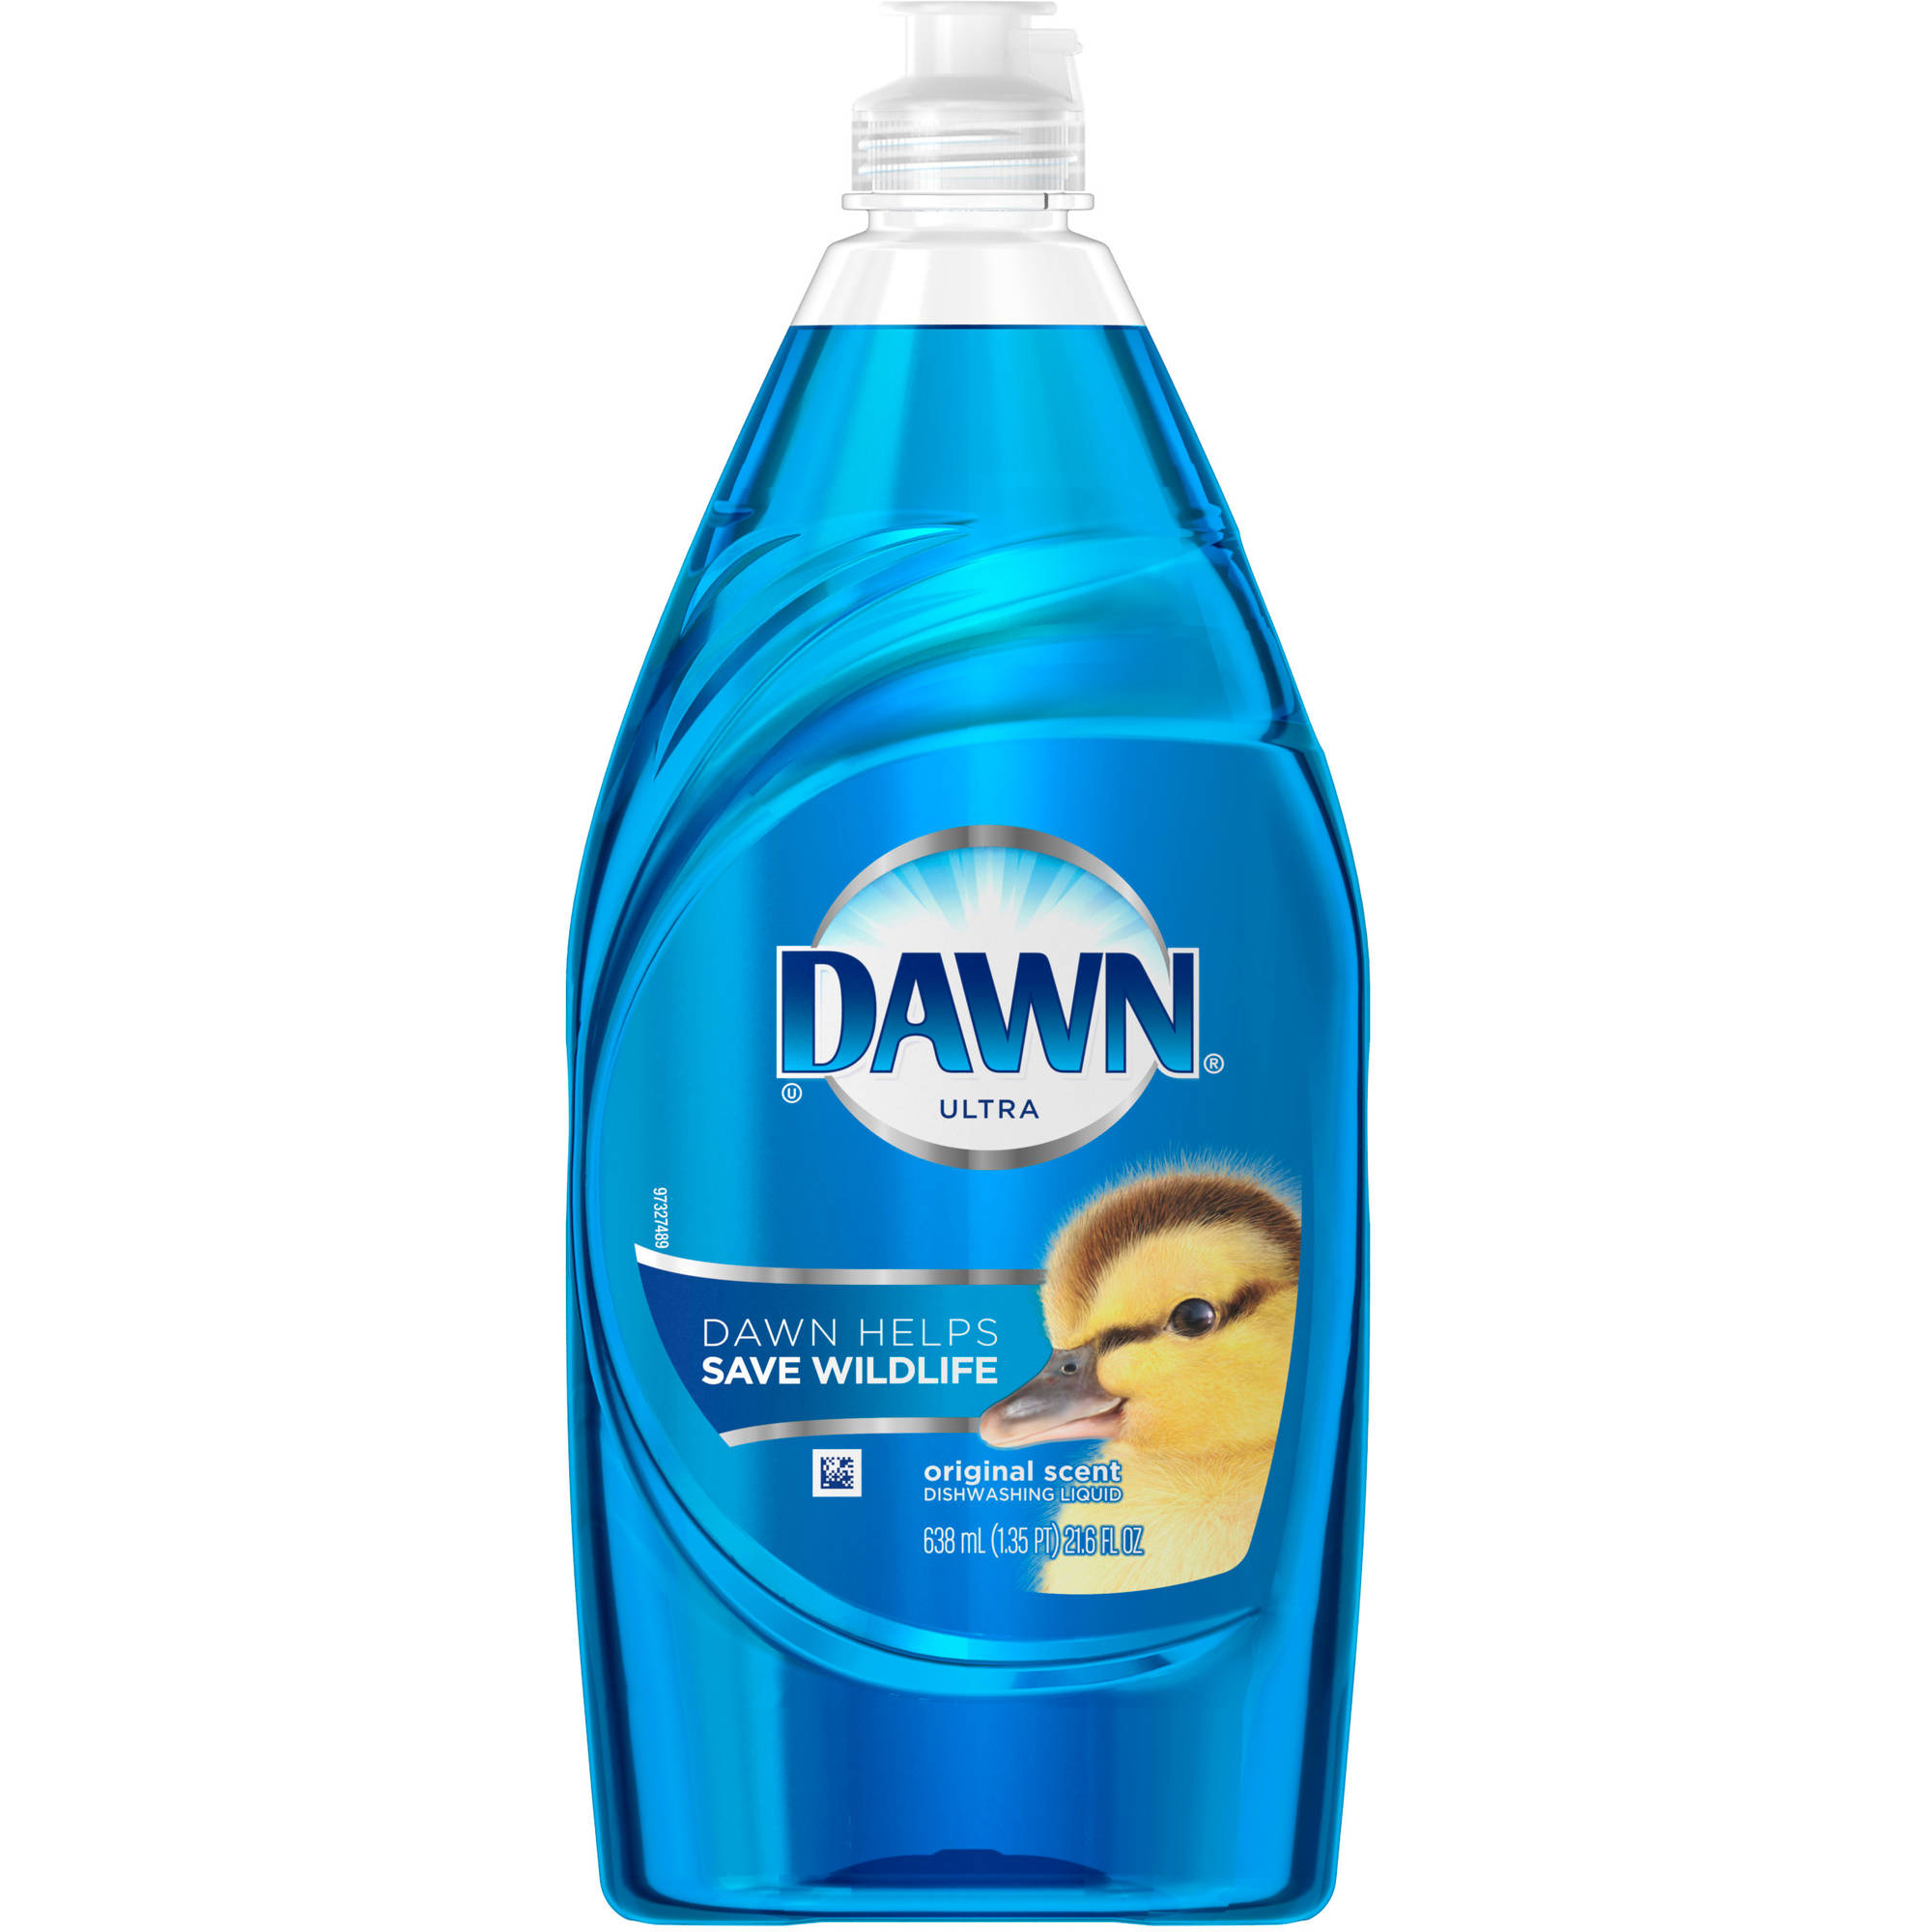 2. DIY Dawn Dishwashing Bubbles